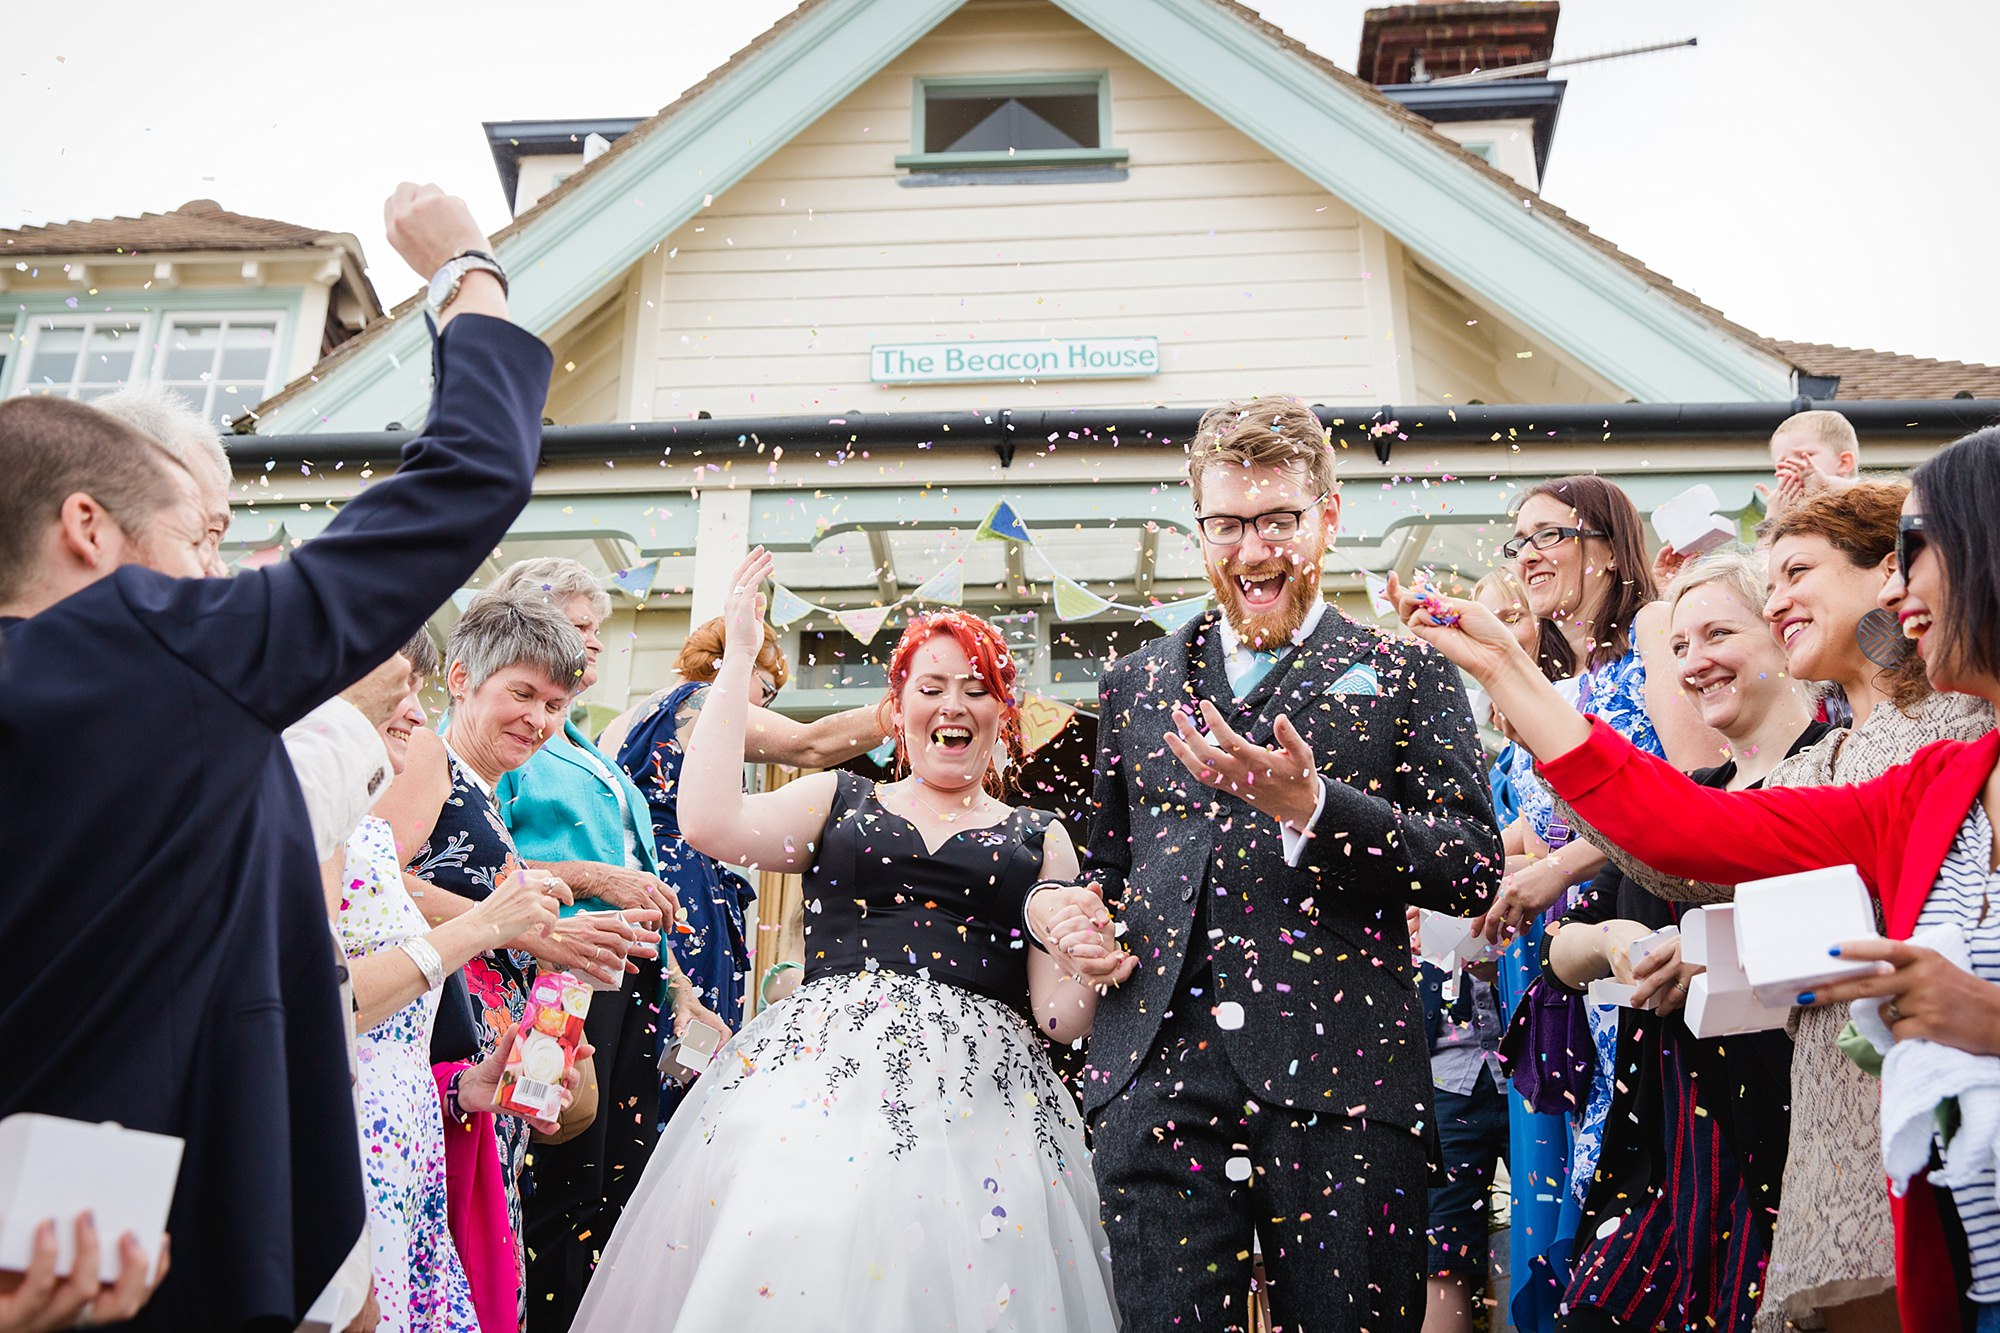 Beacon House wedding bride and groom walk through confetti